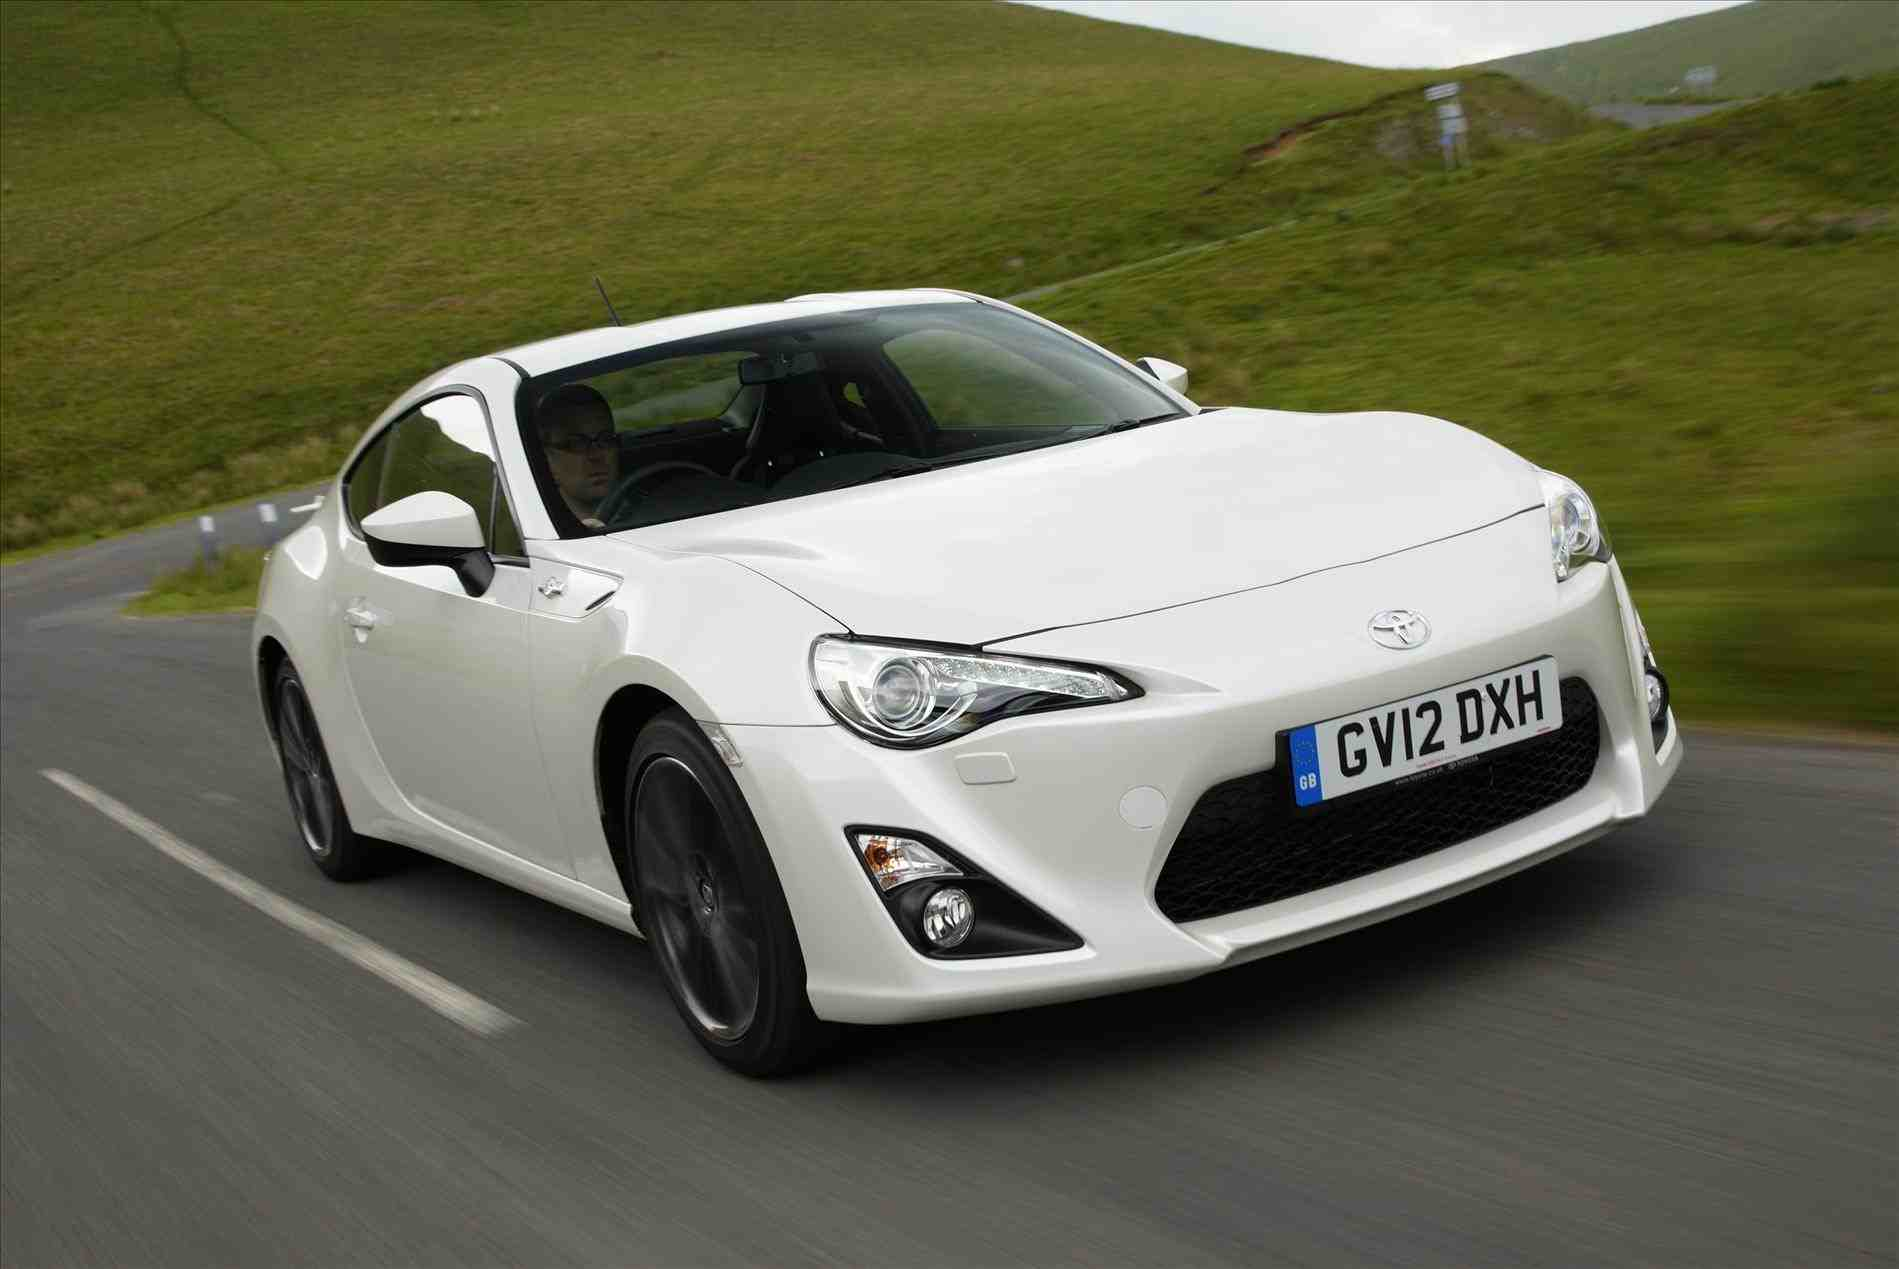 Used Sports Cars For Sale Near Me Lovely Used Sport Cars For Sale